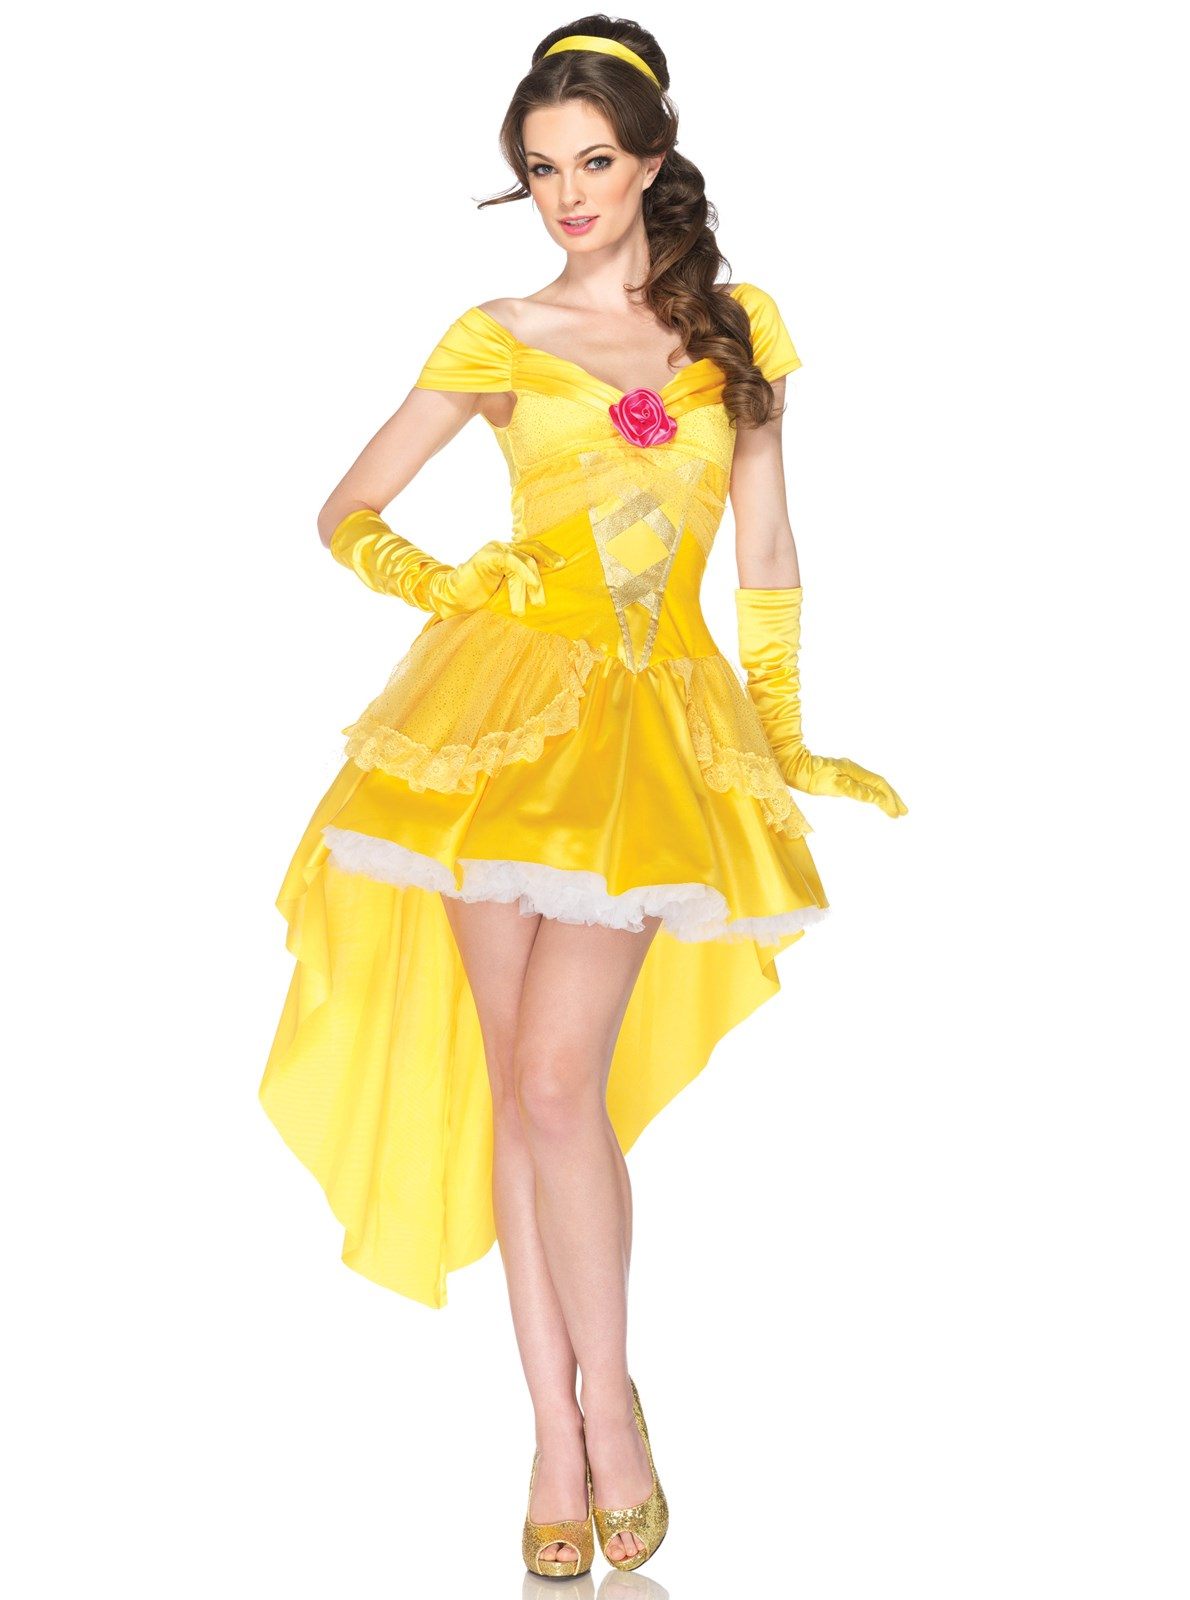 Disney Princesses Enchanting Belle Adult Costume | BuyCostumes.com